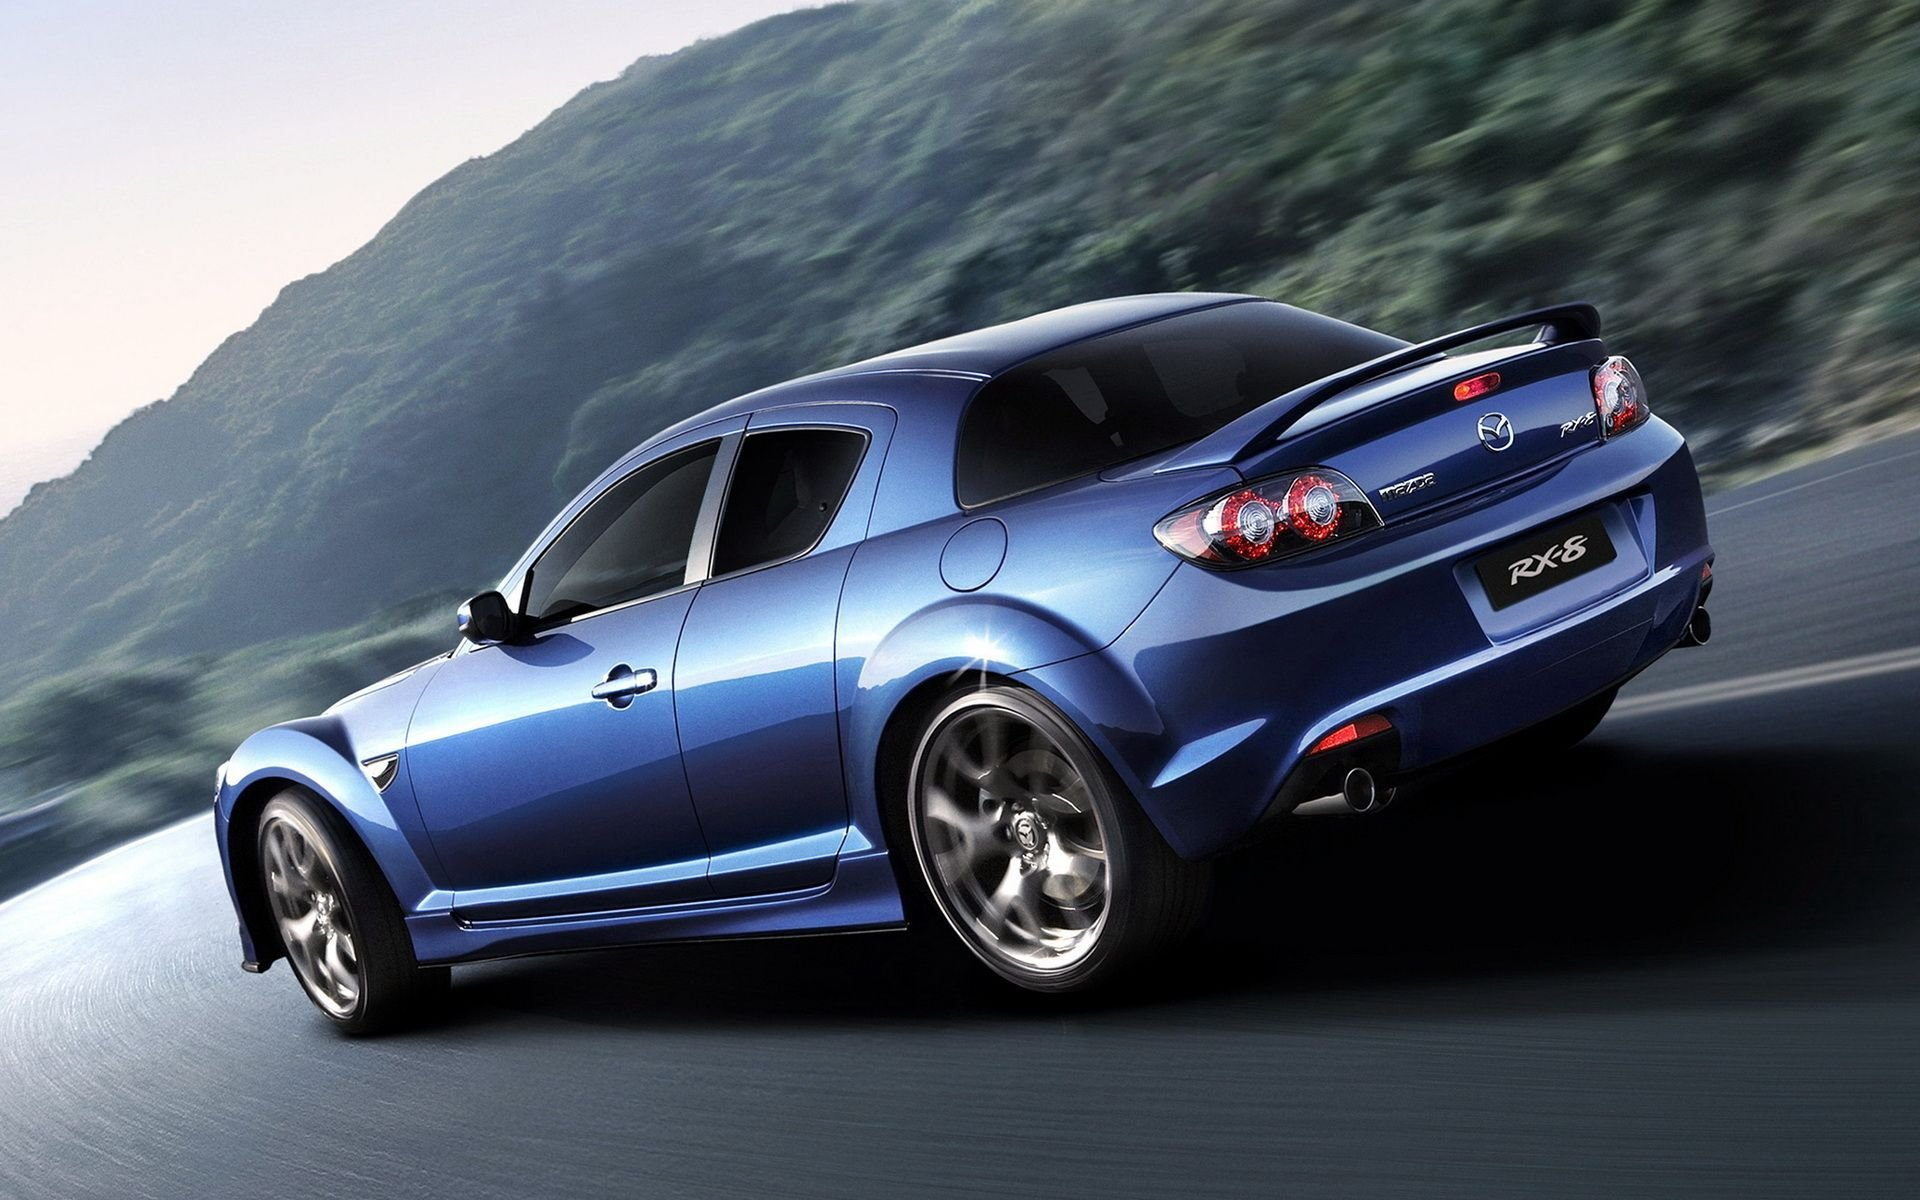 Latest Mazda Rx8 Wallpapers Find Best Latest Mazda Rx8 Wallpapers Free Download